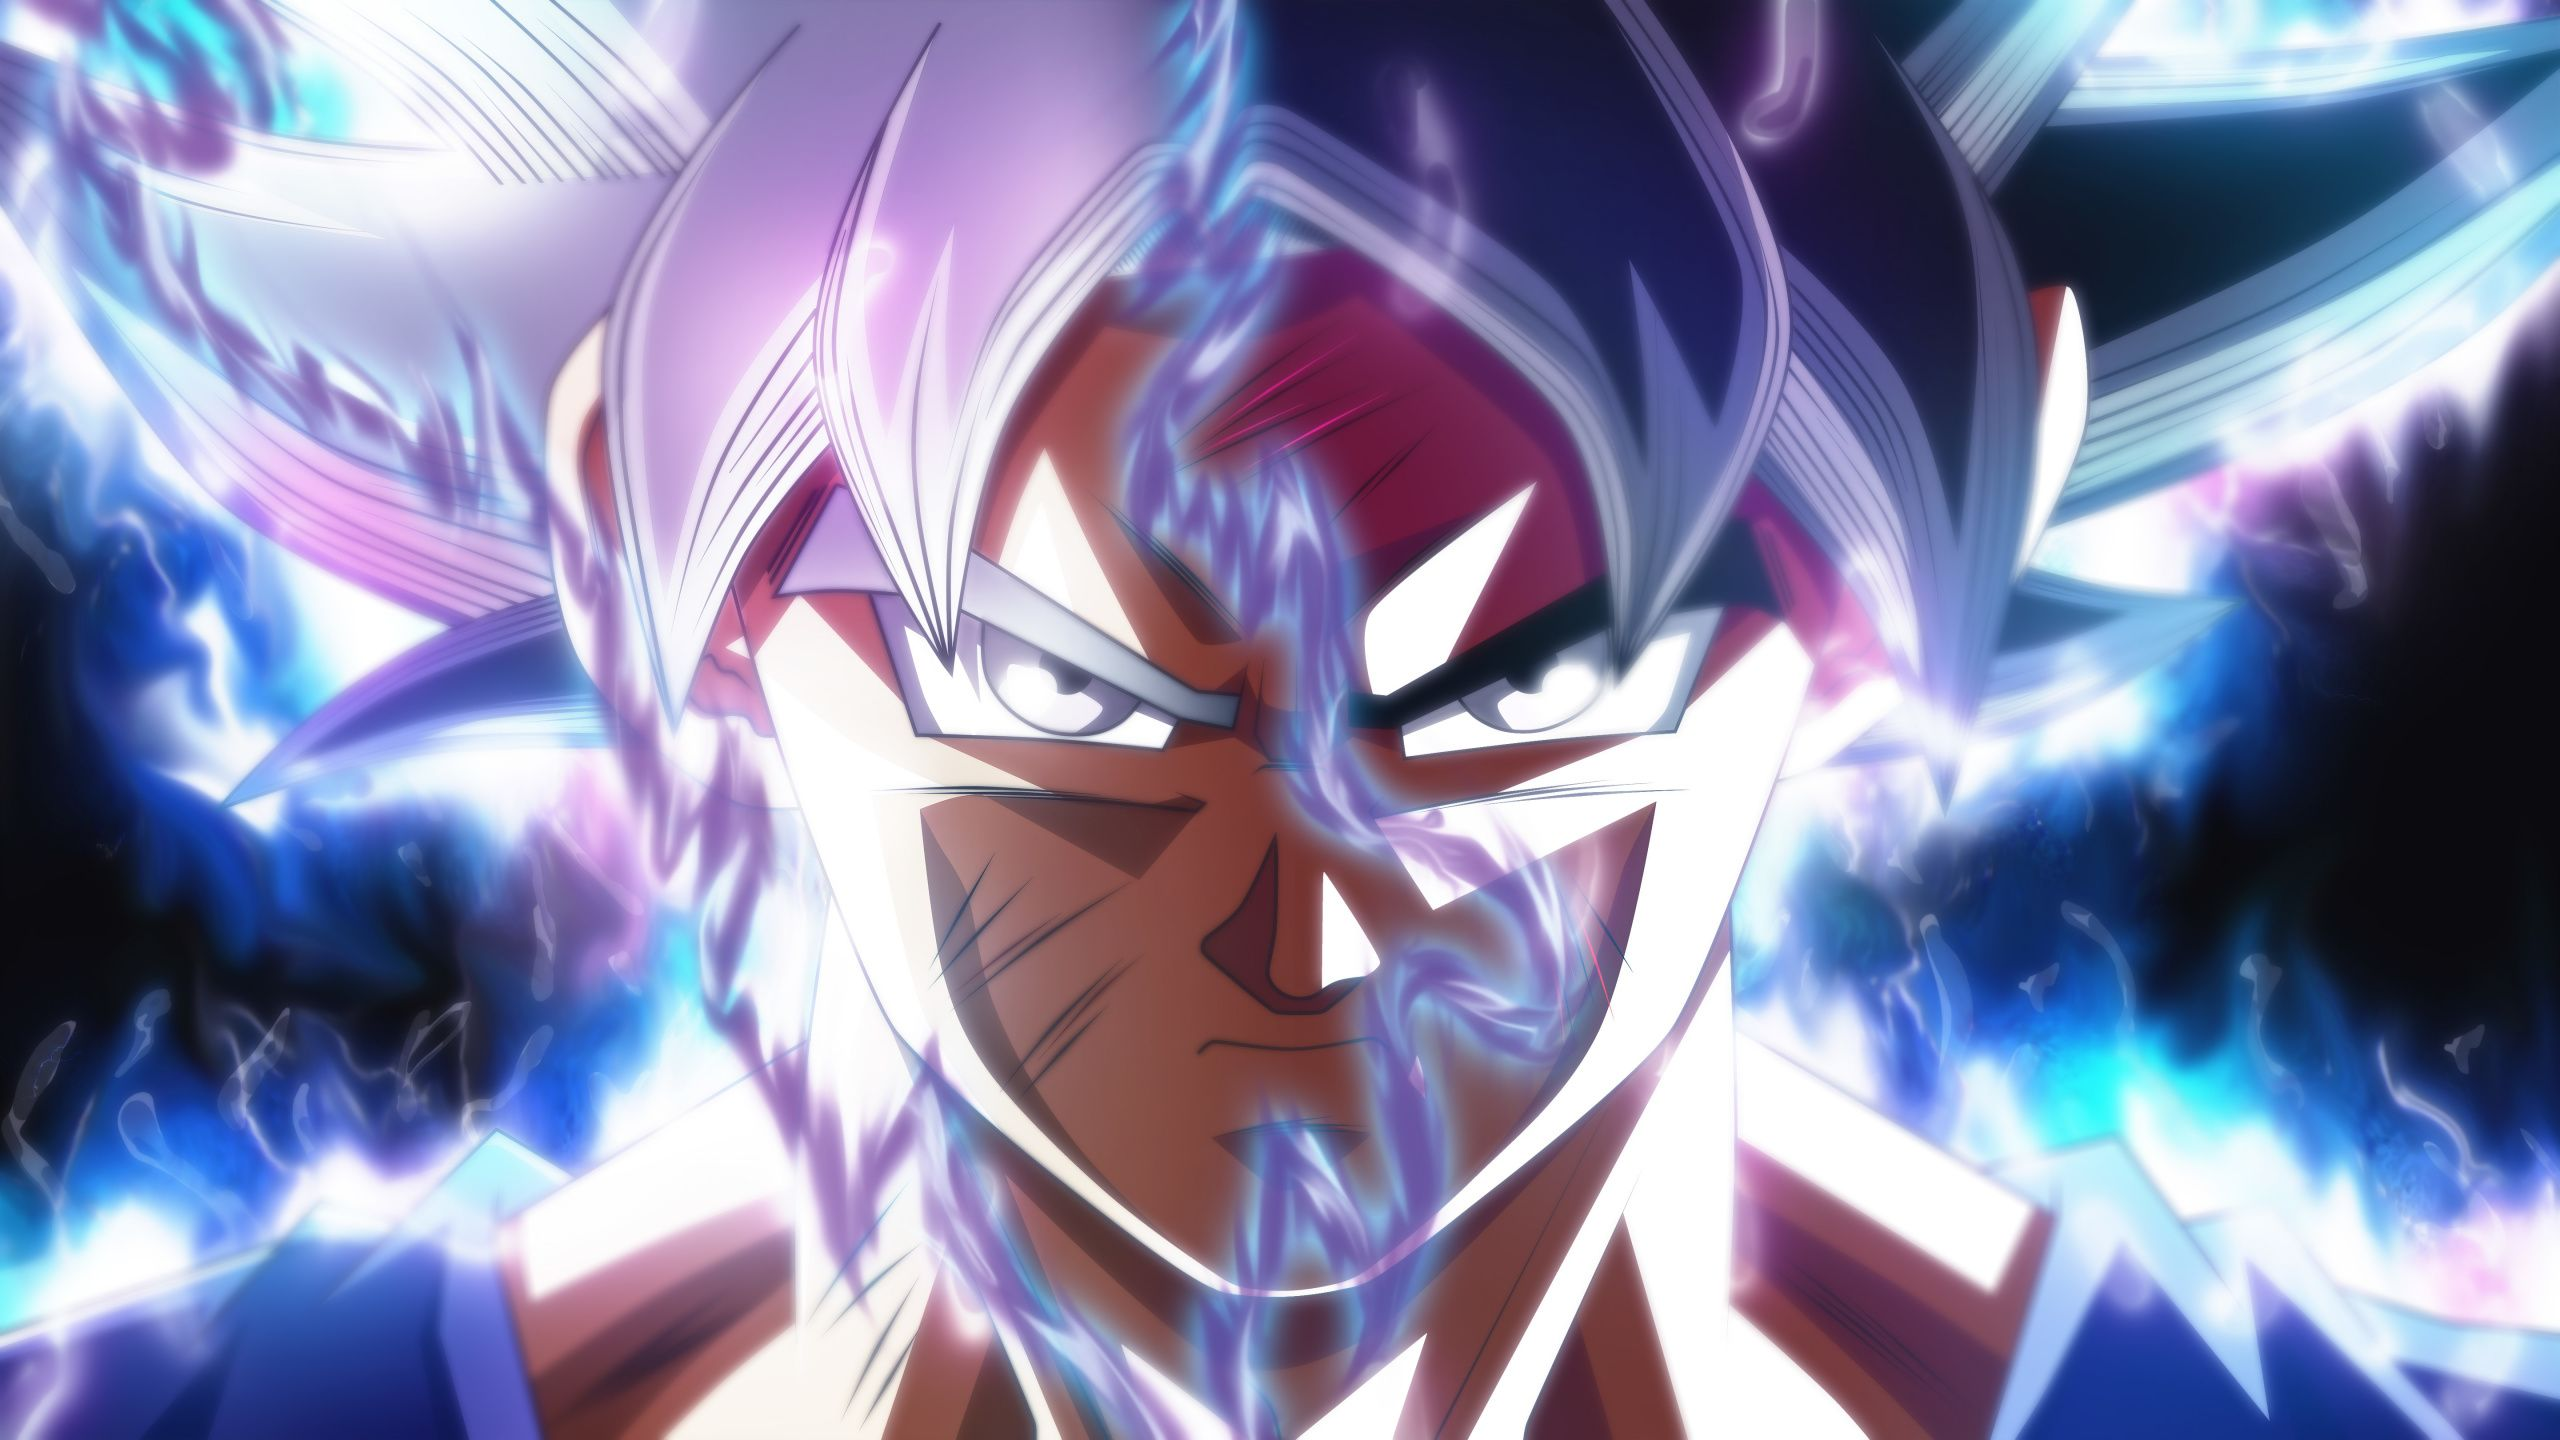 Download 2560x1440 Wallpaper Goku Face Off Ultra Instinct Dragon Ball Super 5k D Dragon Ball Super Wallpapers Dragon Ball Wallpapers Dragon Ball Super Art